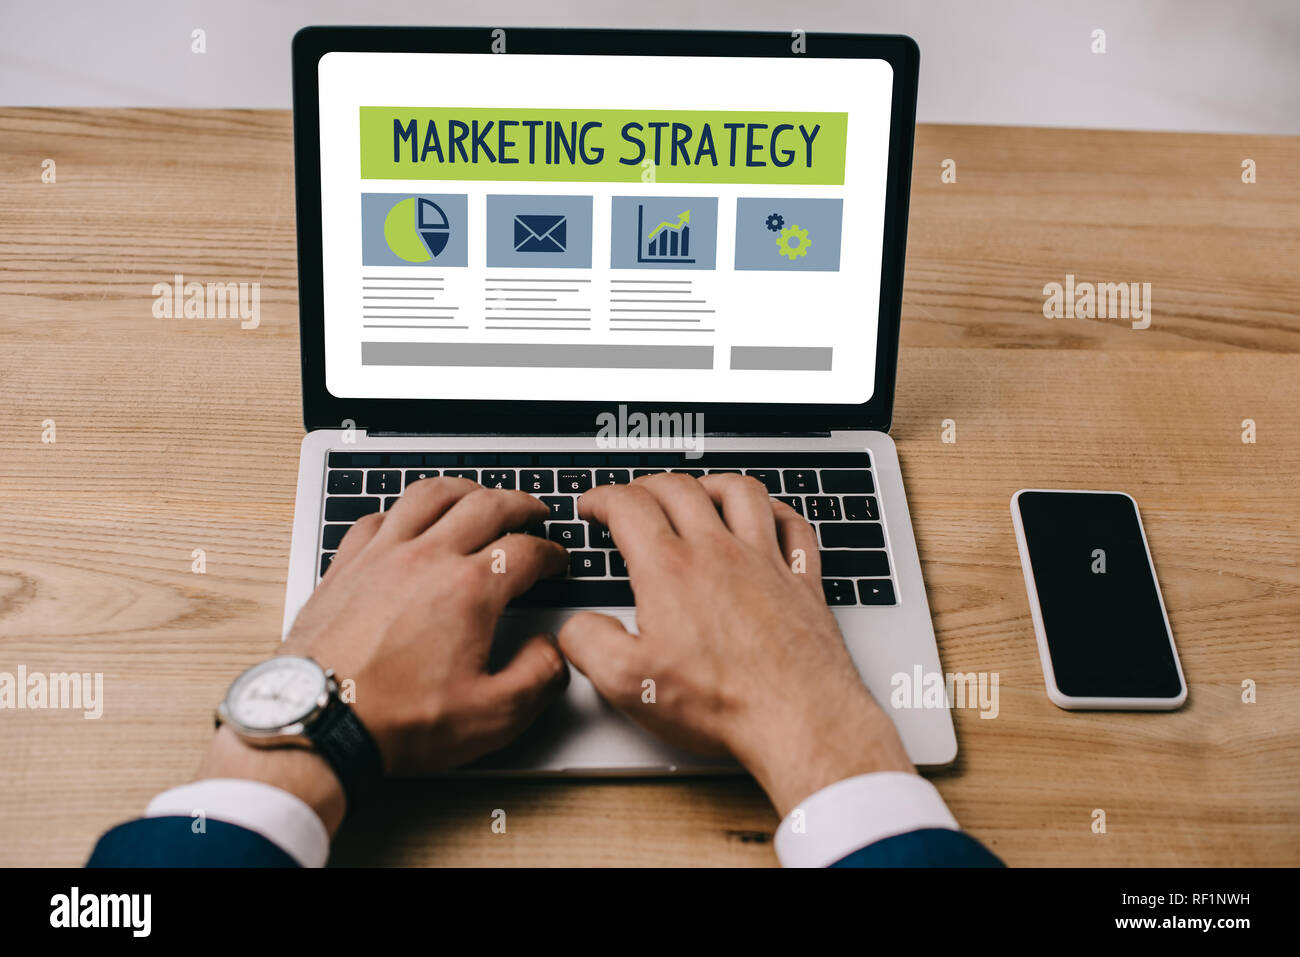 cropped view of businessman typing on laptop with marketing strategy icons - Stock Image